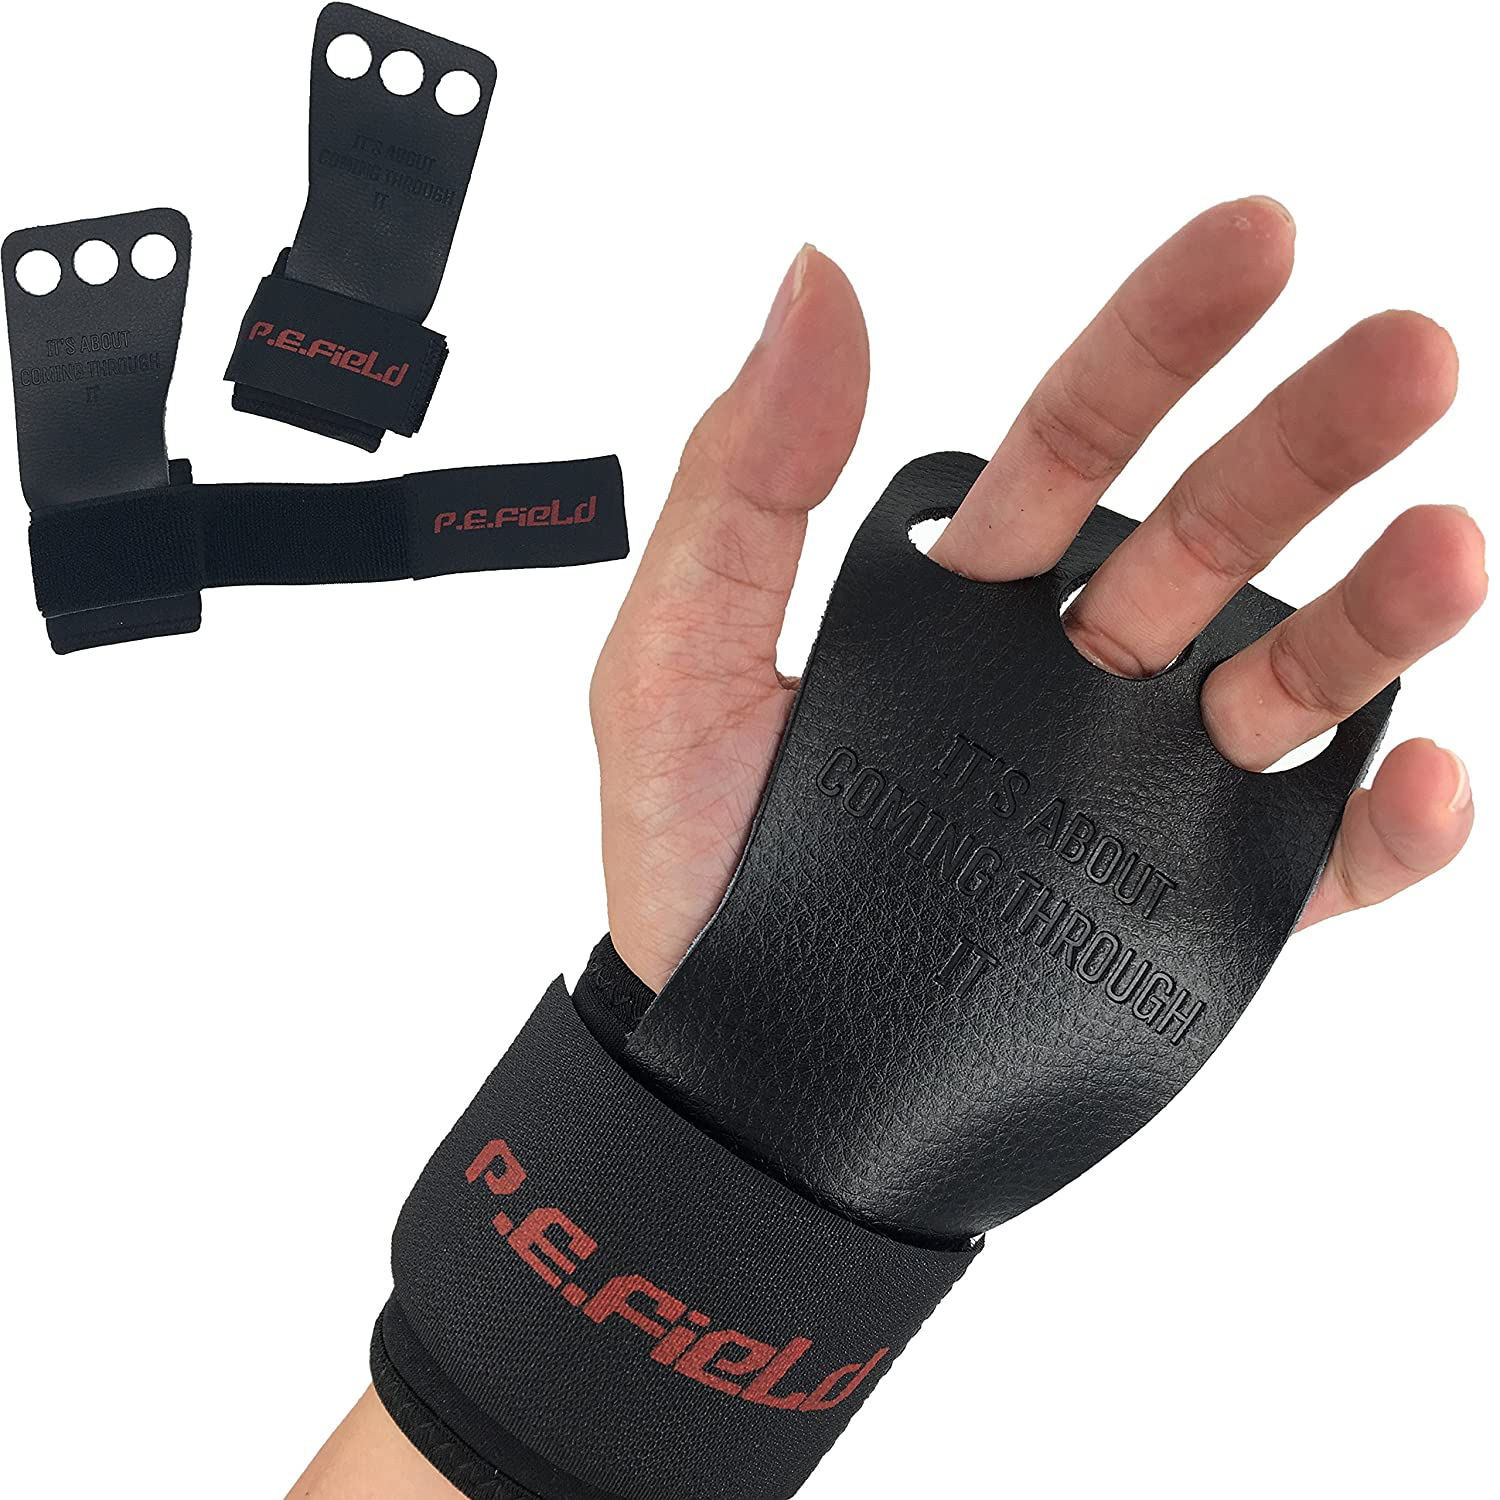 Pull ups Weightlifting /&More Kettlebell for Crossfit Protect Your Palms and Wrists. P.E.Field Top-Grain Leather Gymnastics Hand Grips with Unique Wrist Protection System